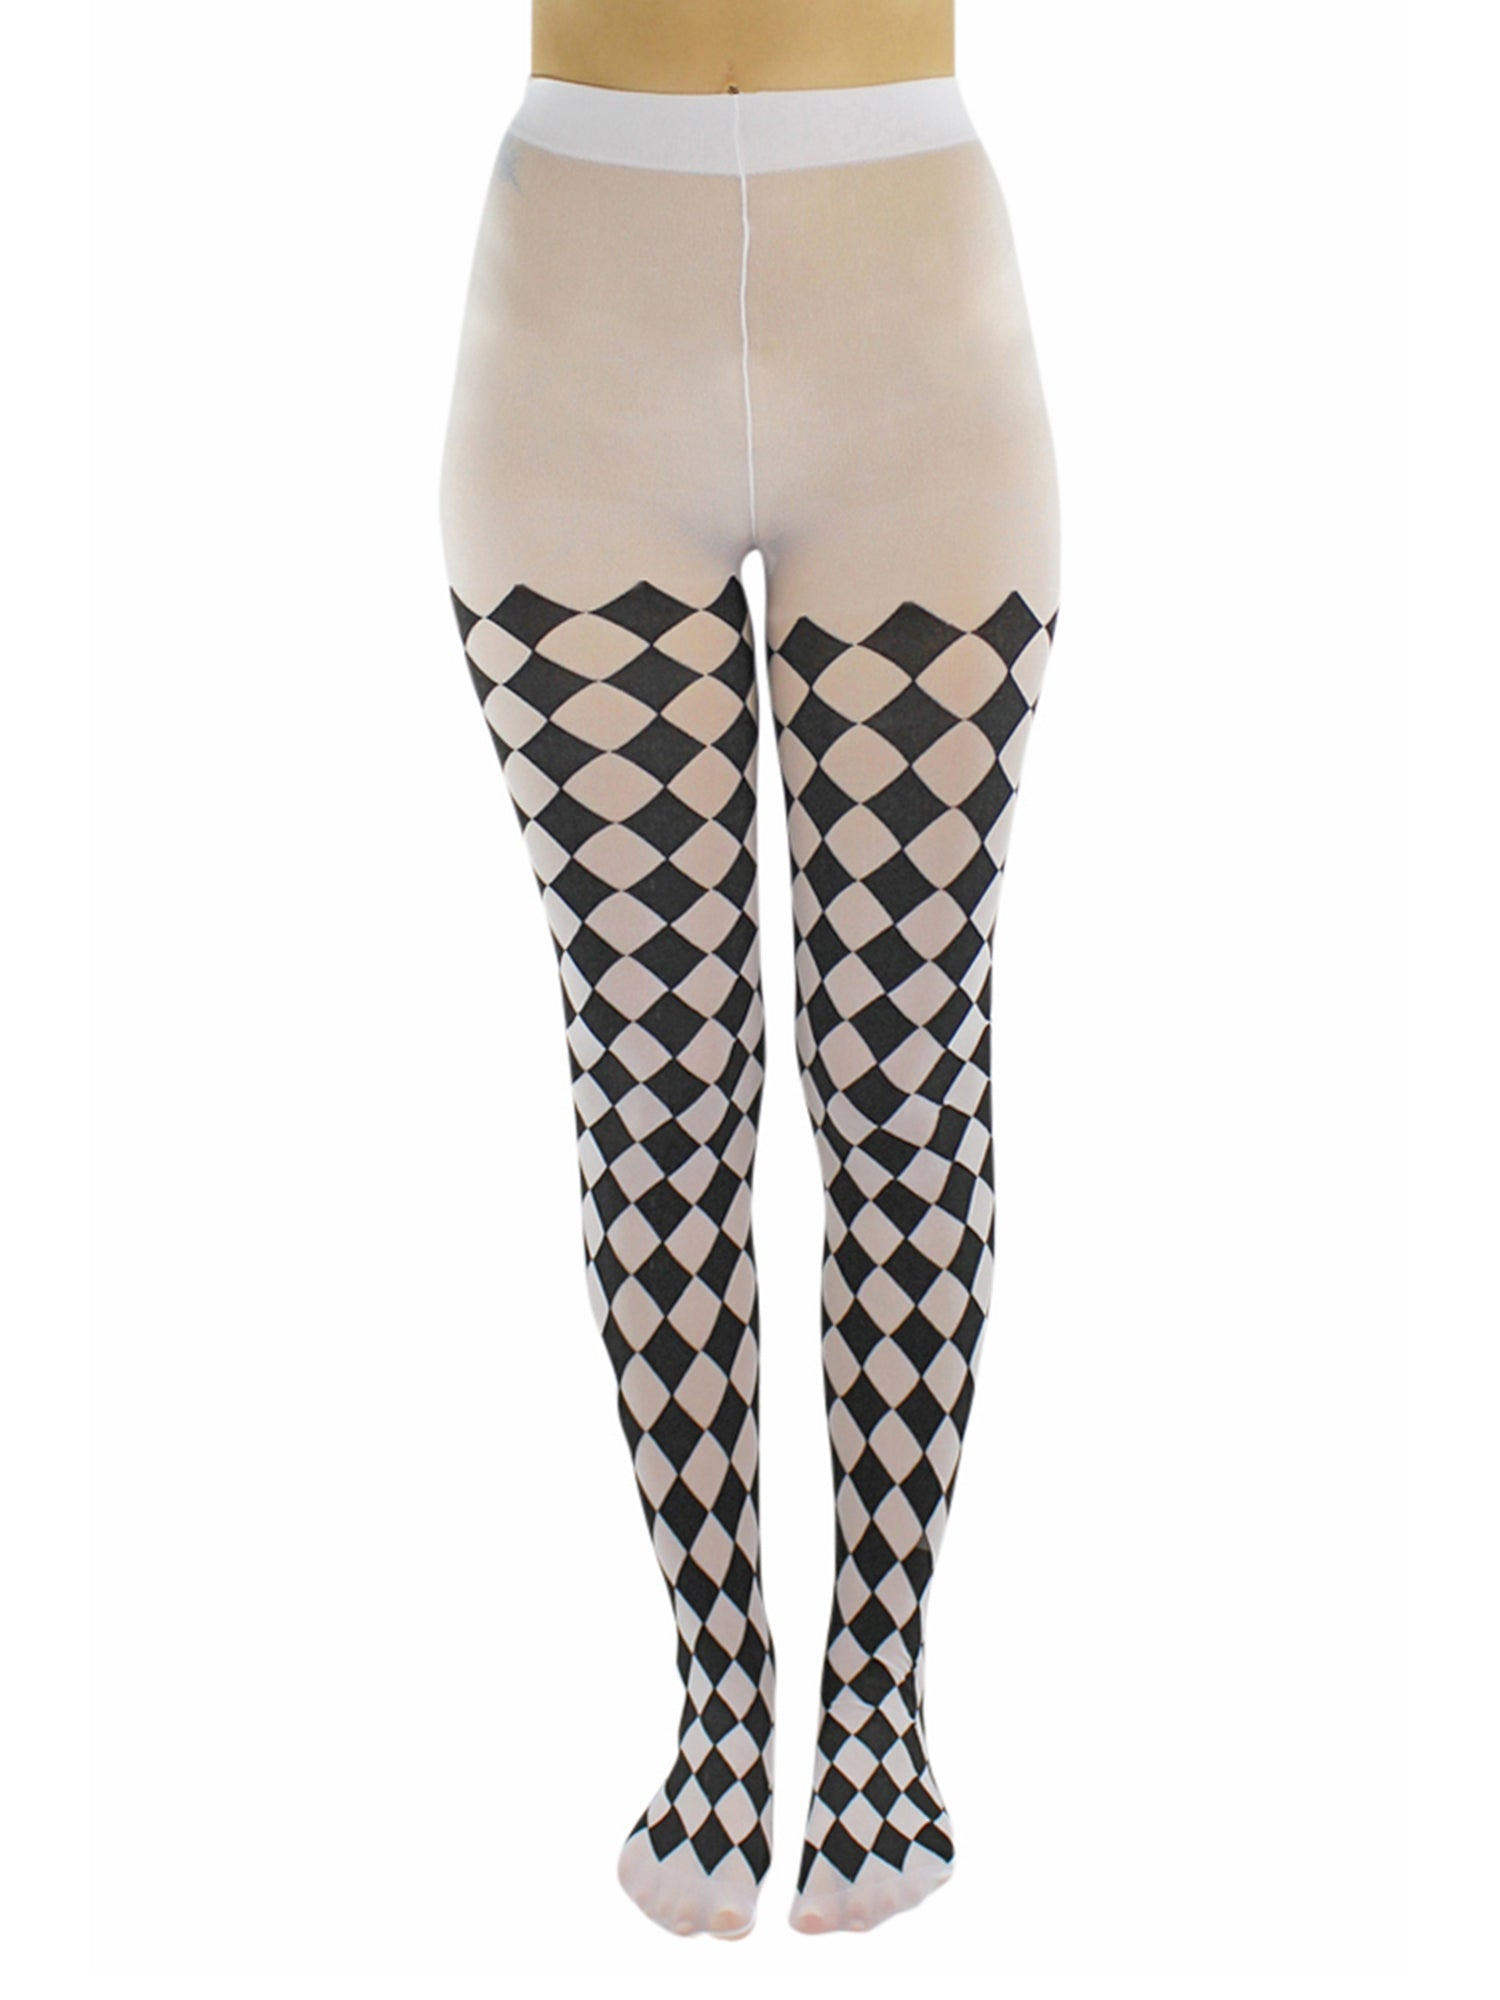 Harlequin Adults Tights Black /& White